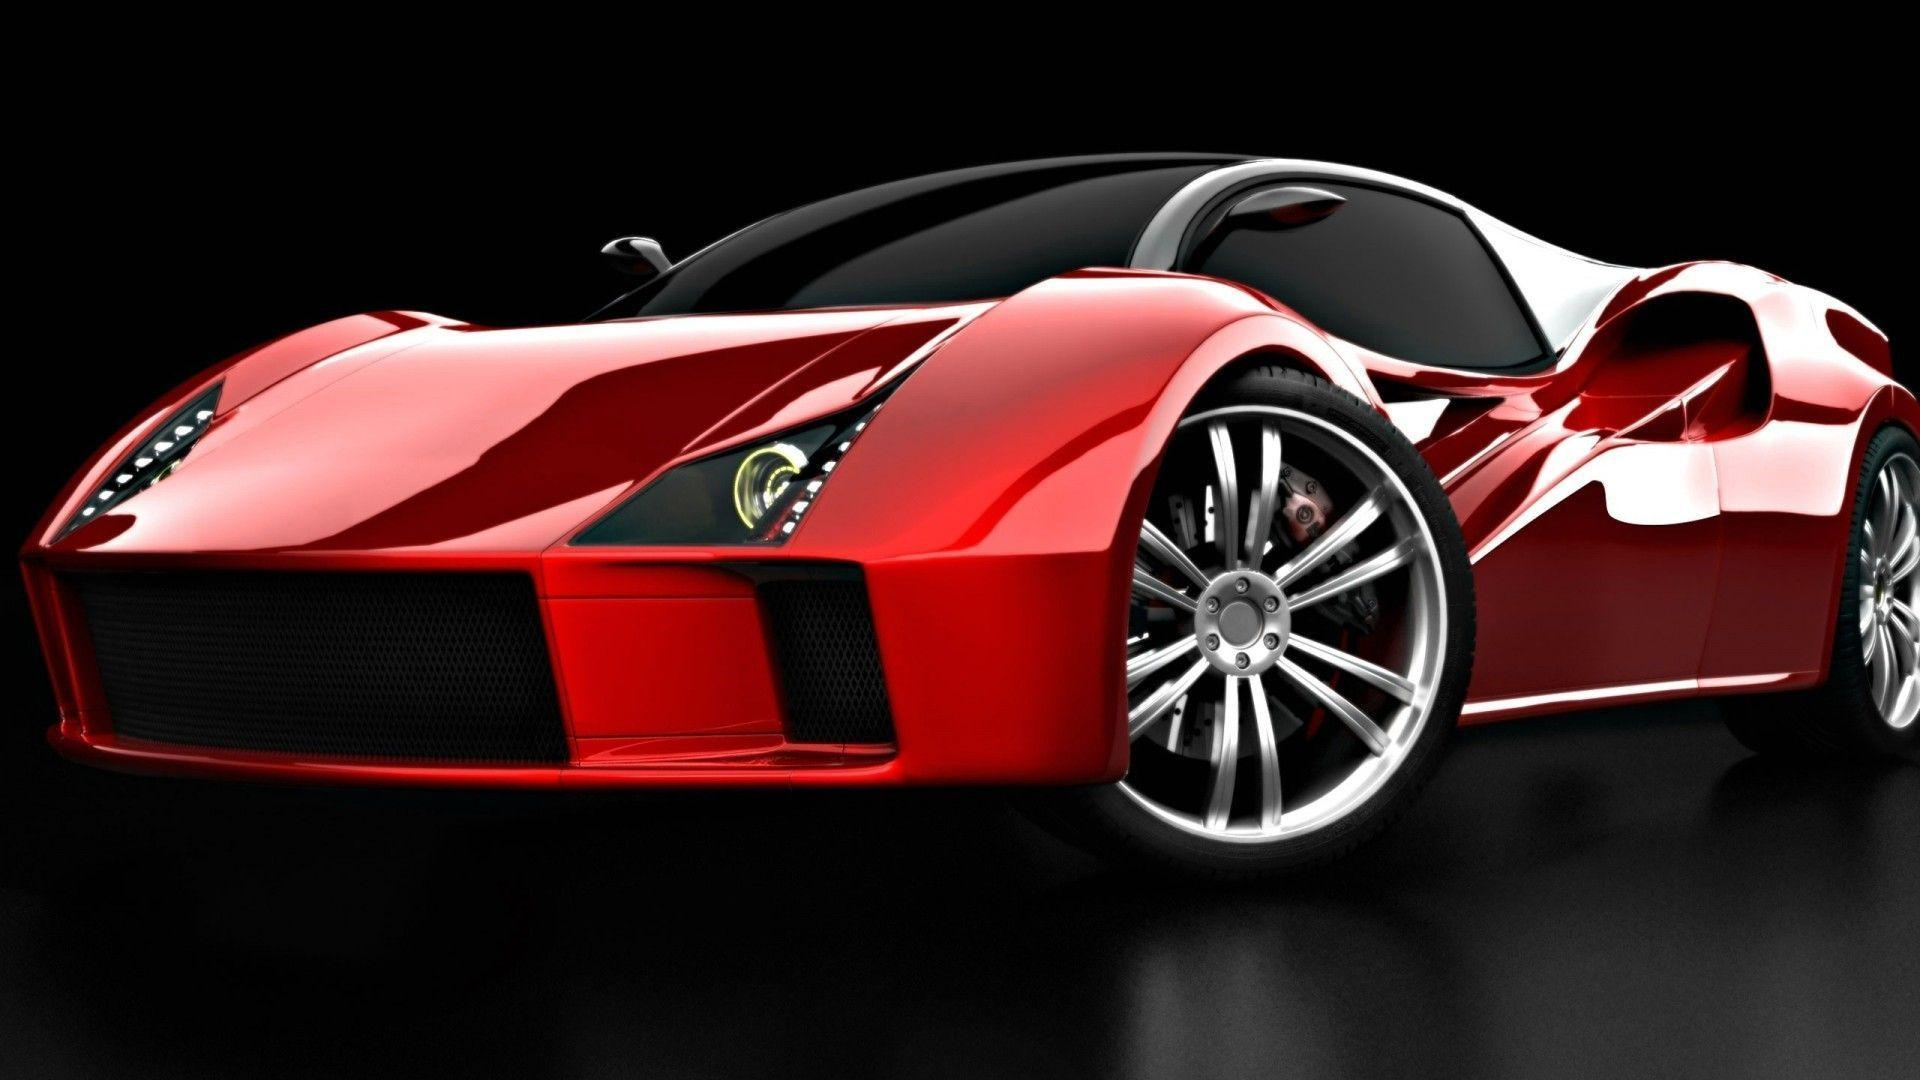 super cars wallpaper (2) - HD Cars Wallpapers | HD Cars Wallpapers